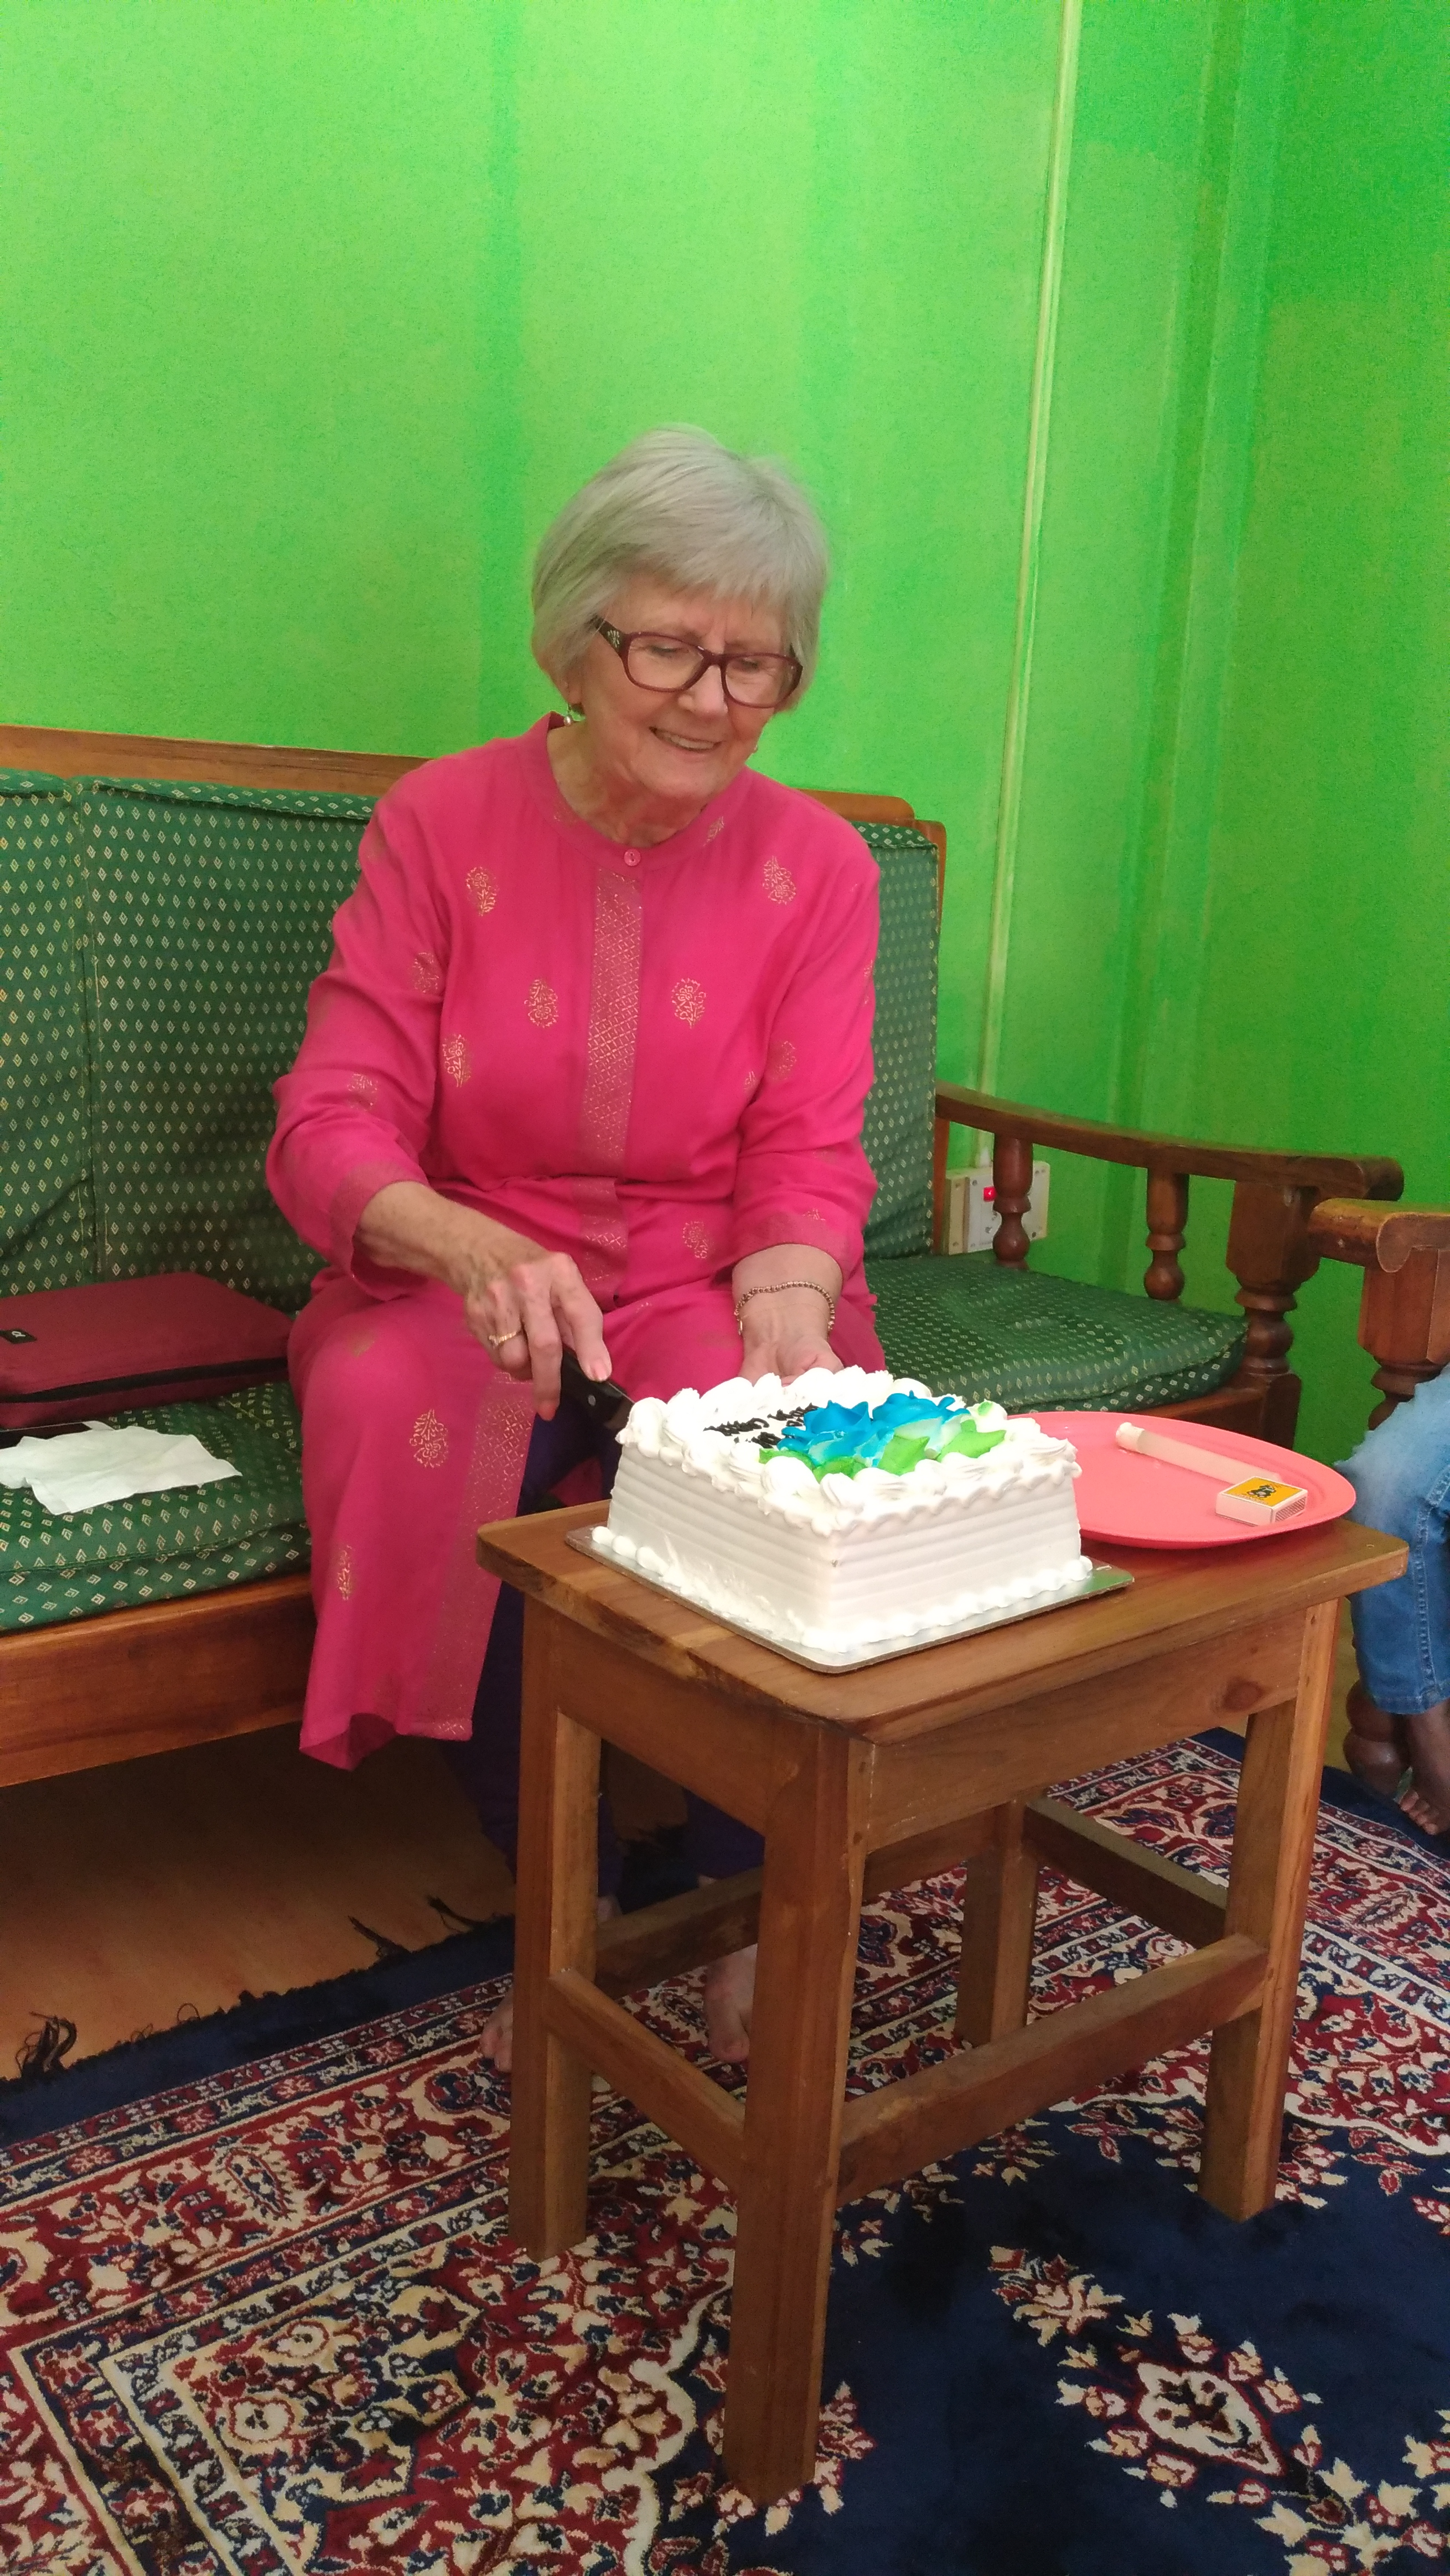 Mom's 77th birthday party